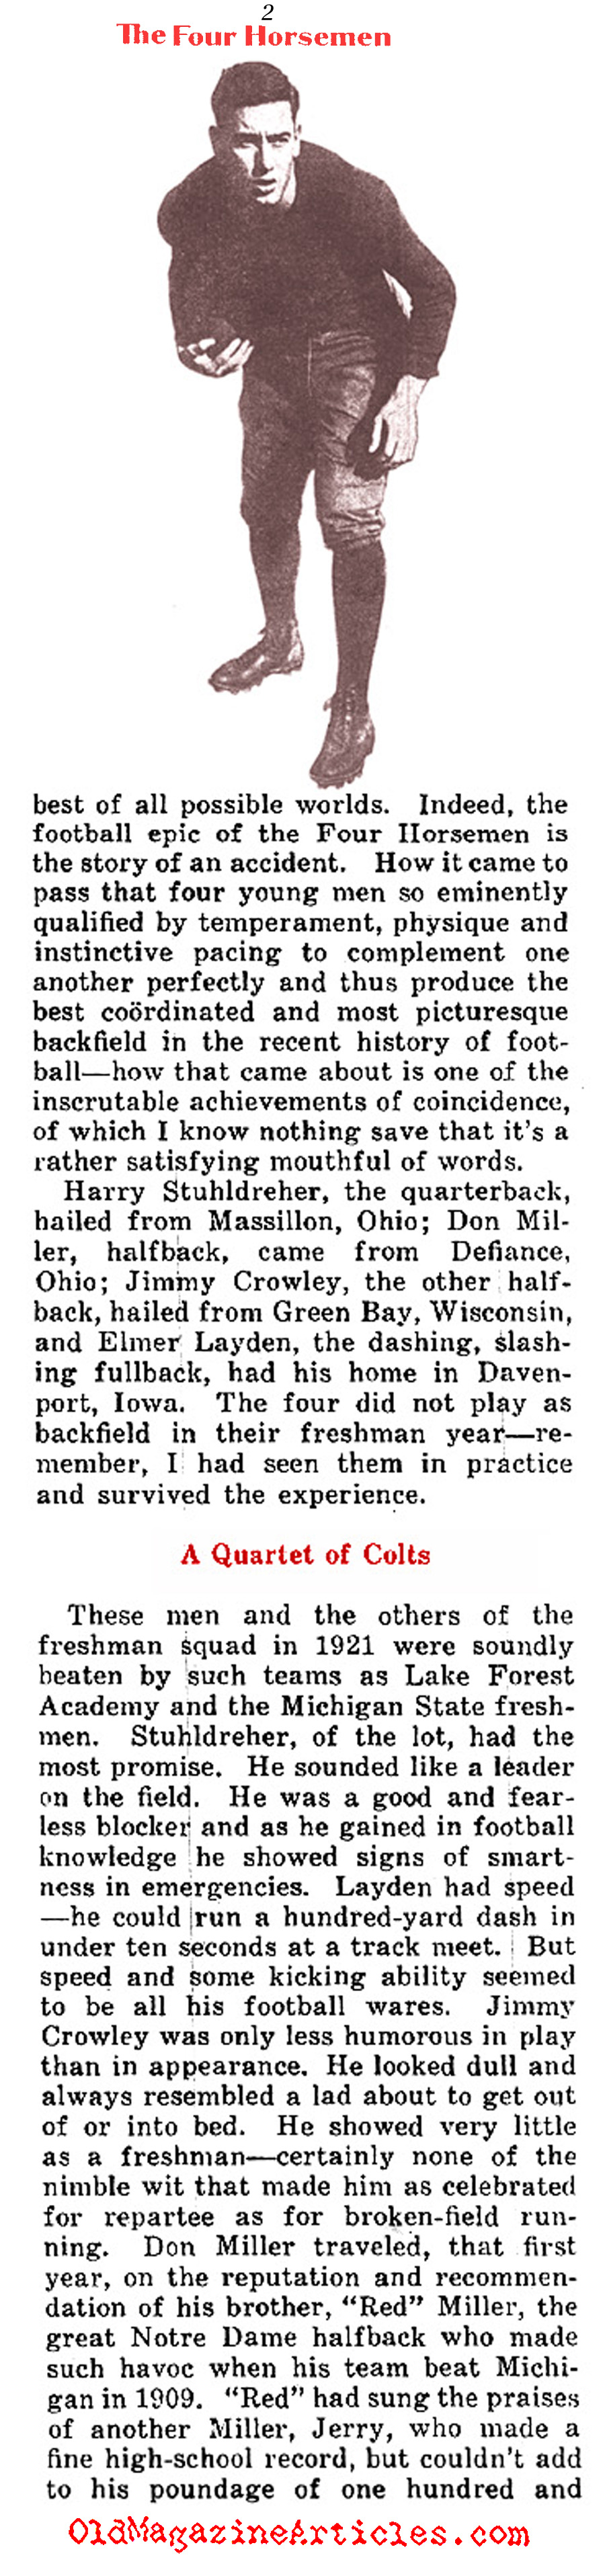 The Four Horsemen and Knute Rockne in His Own Words (Collier's Magazine, 1930)